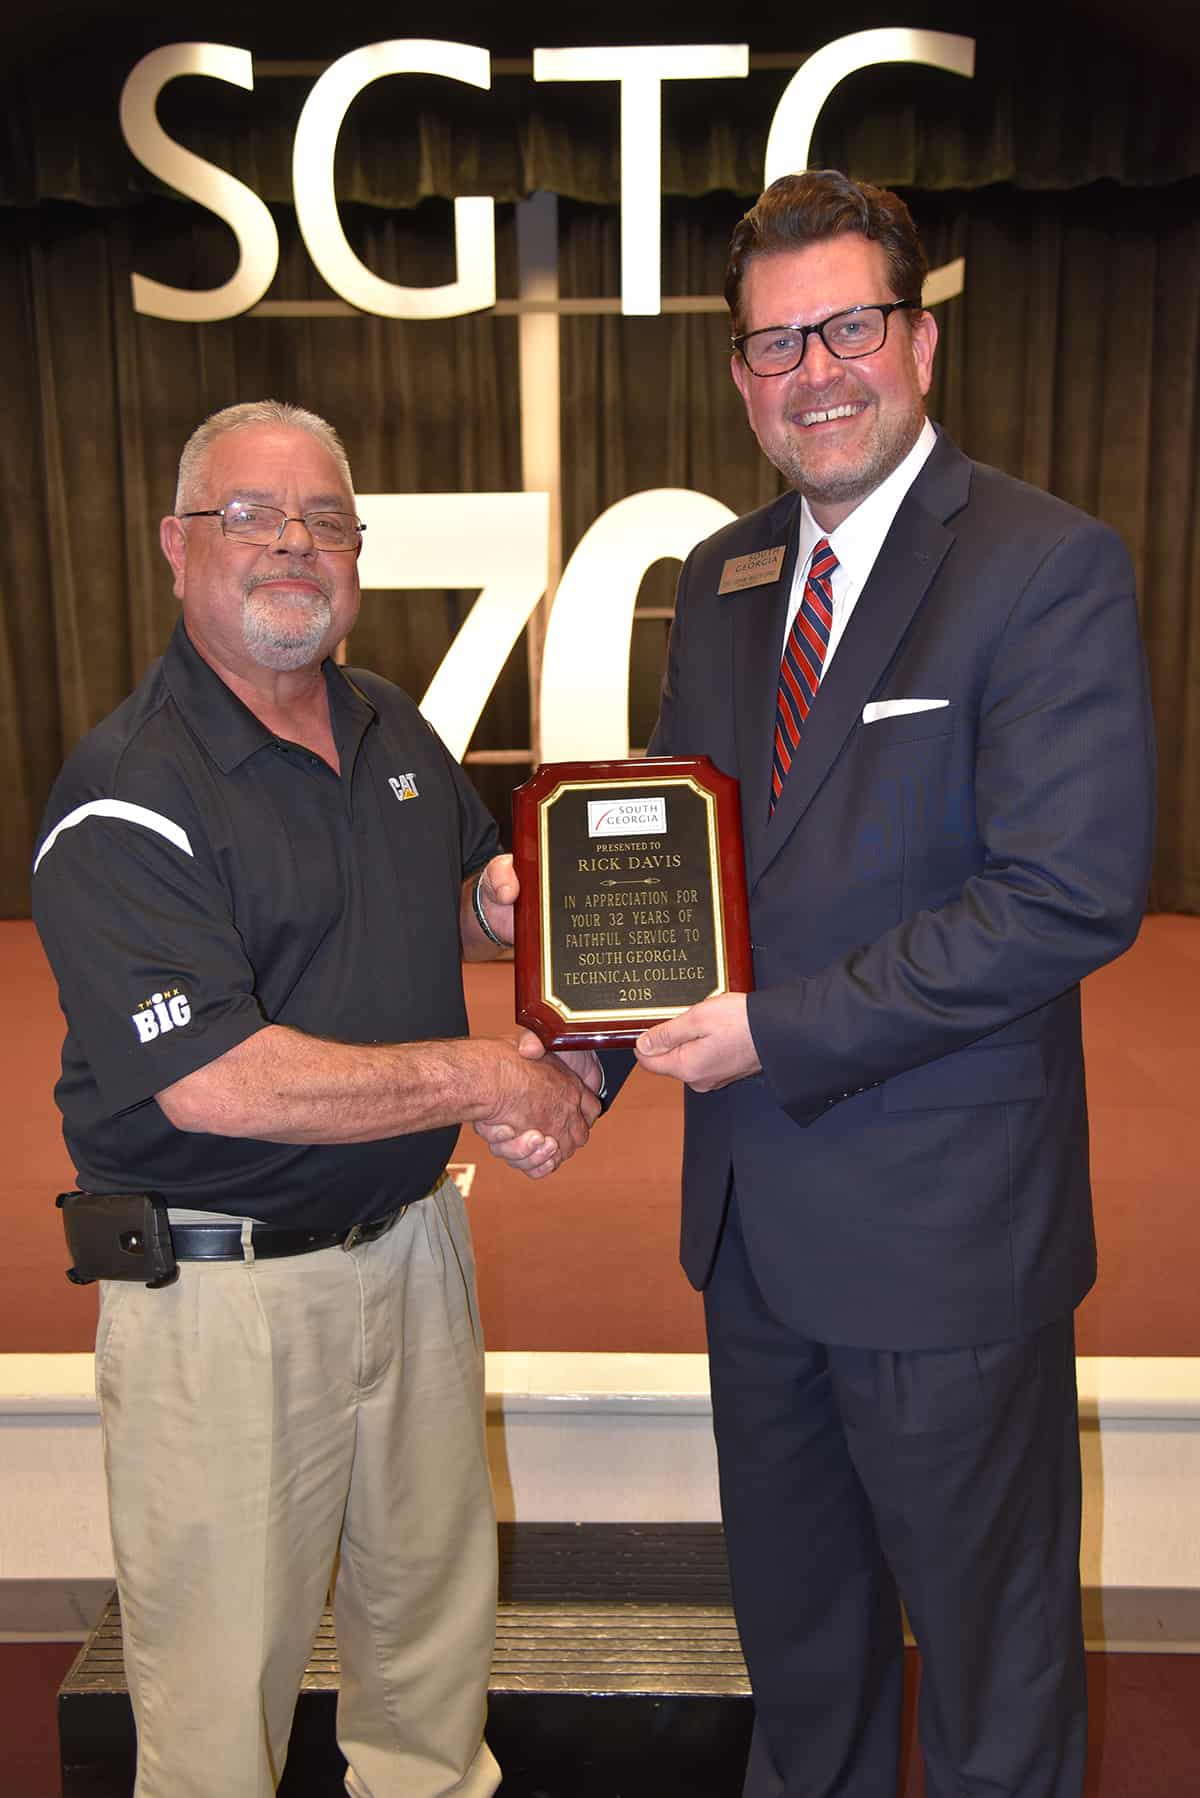 Dr. John Watford (r) is shown above presenting Rick Davis with a plaque in honor of his more than 30 years of service with South Georgia Technical College.